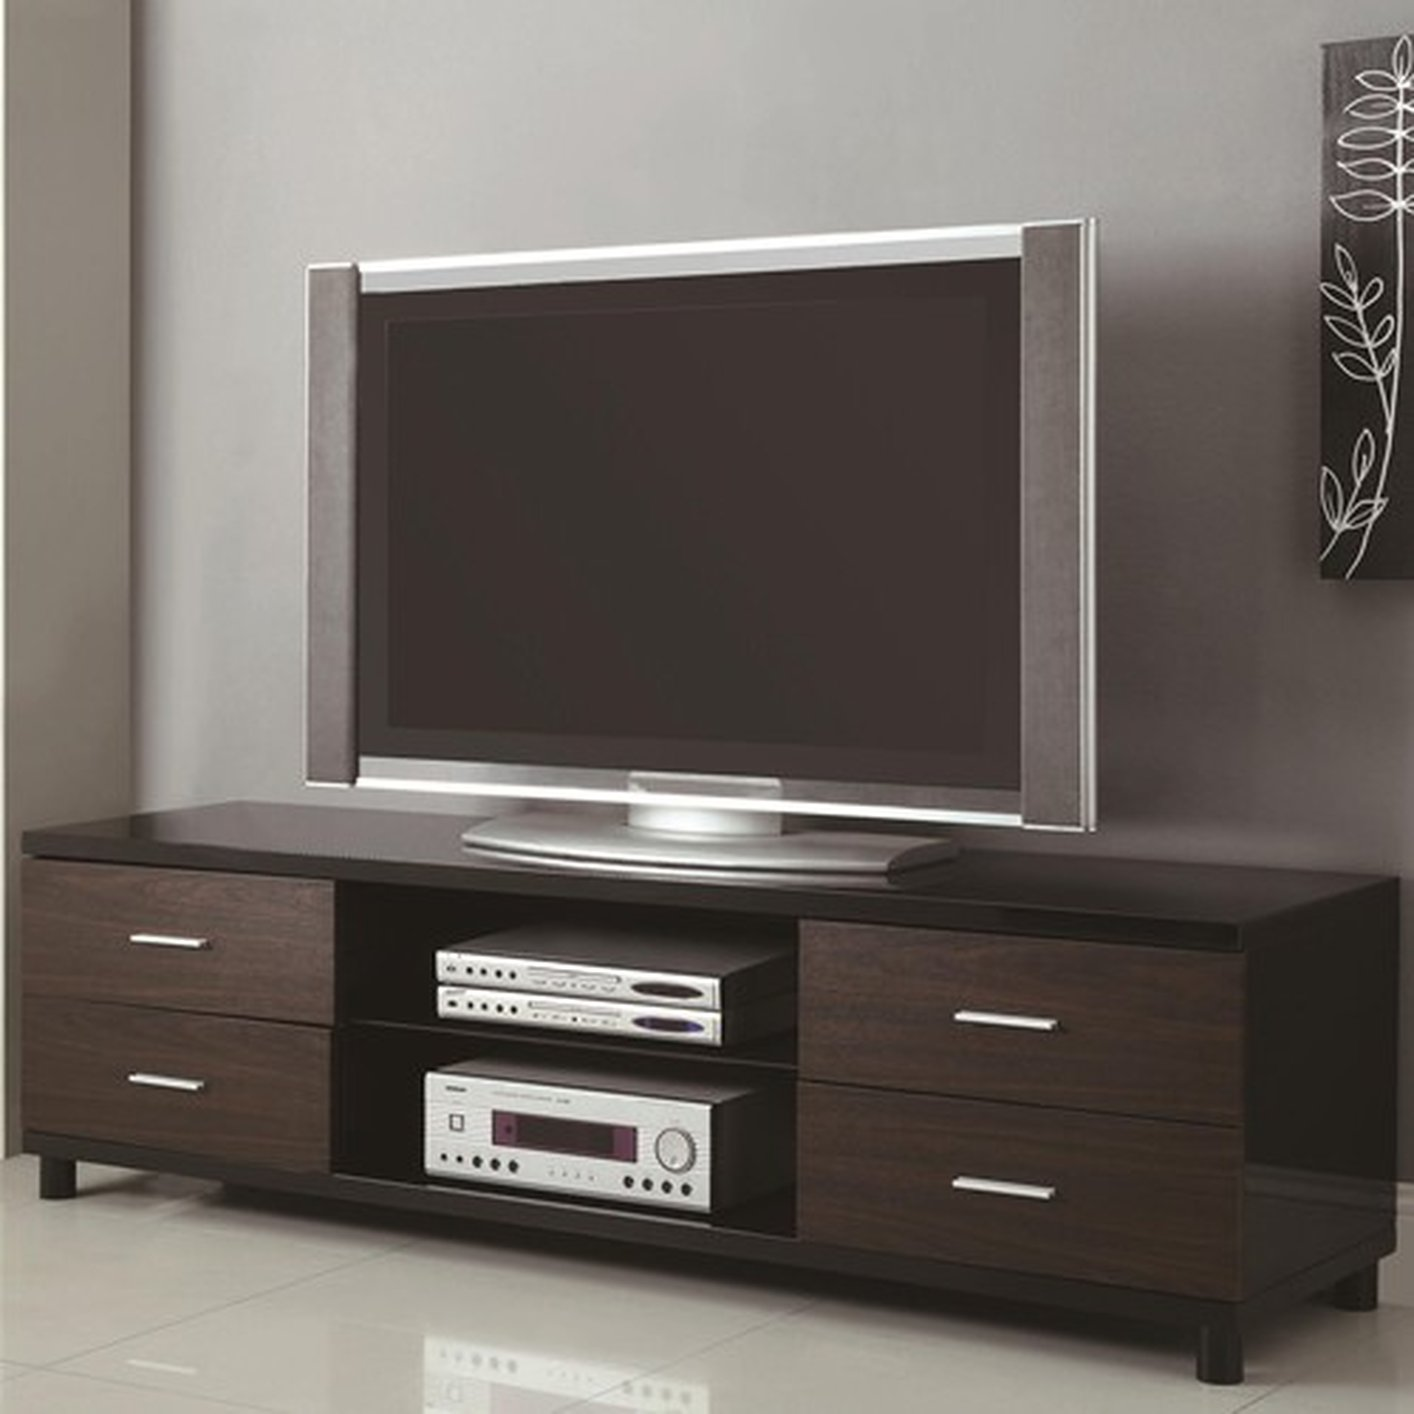 Tv Stand Brown Wood Tv Stand Steal A Sofa Furniture Outlet Los